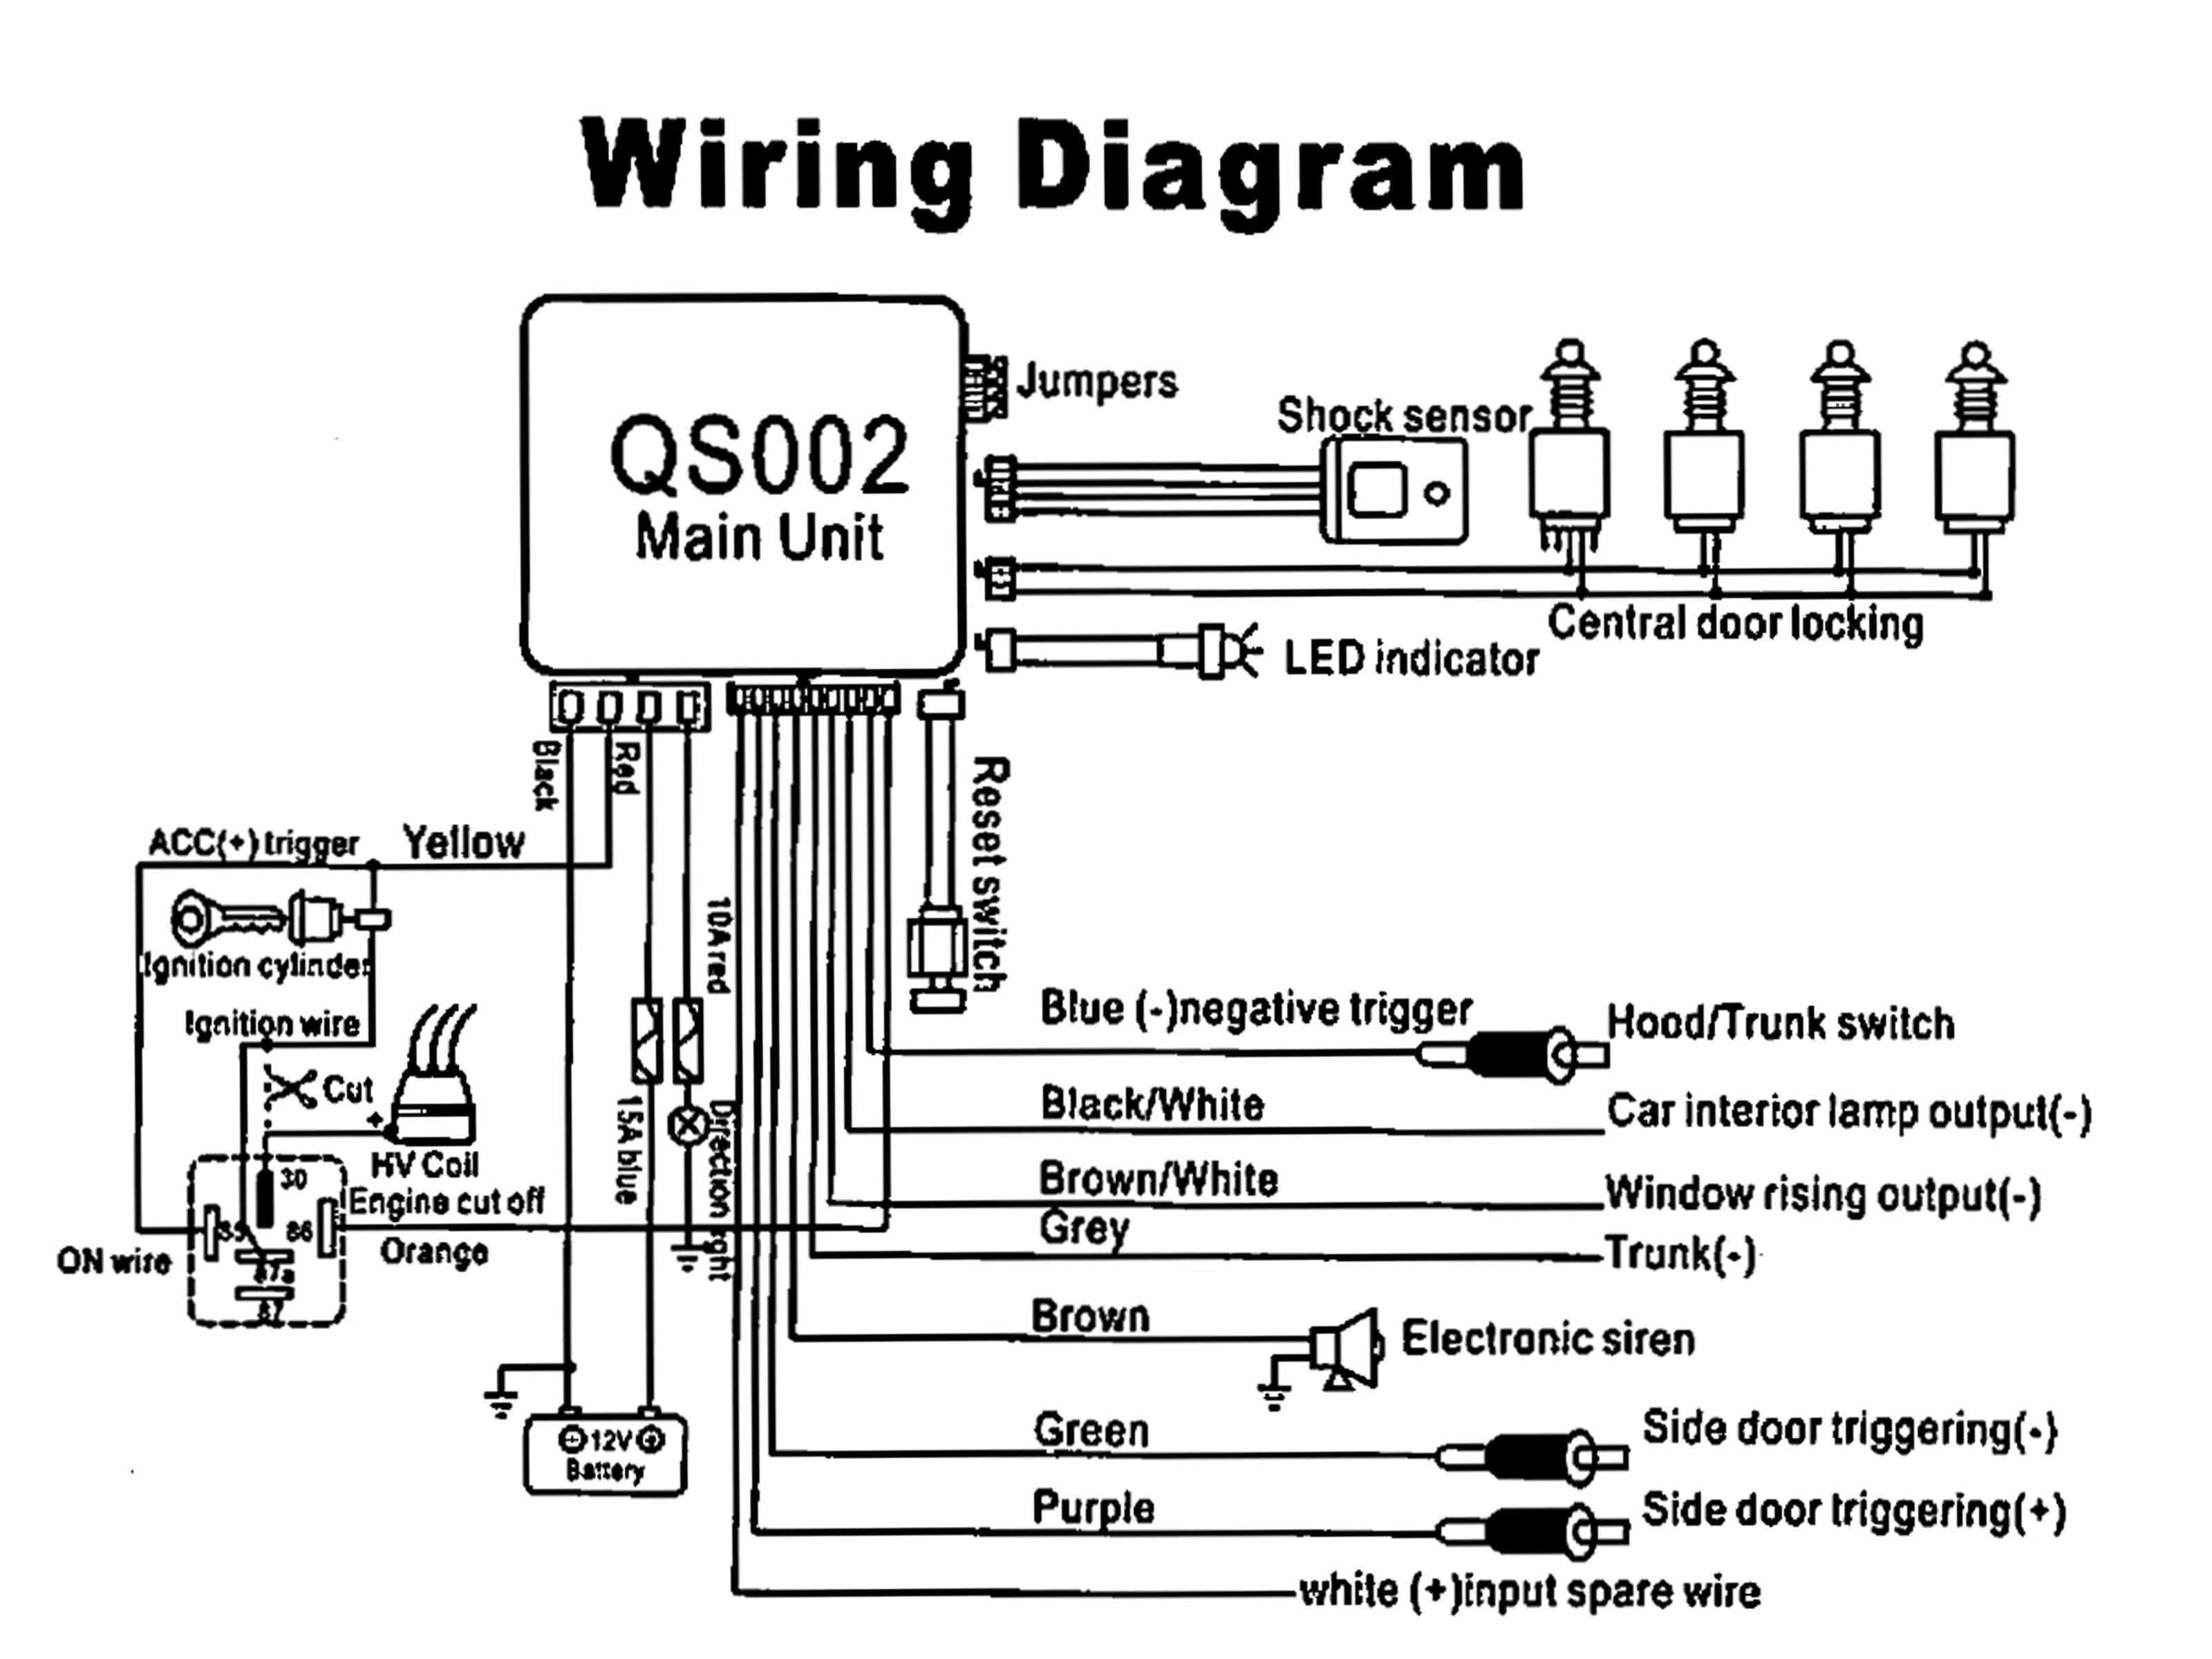 Clarion Cmd5 Wiring Diagram : 27 Wiring Diagram Images